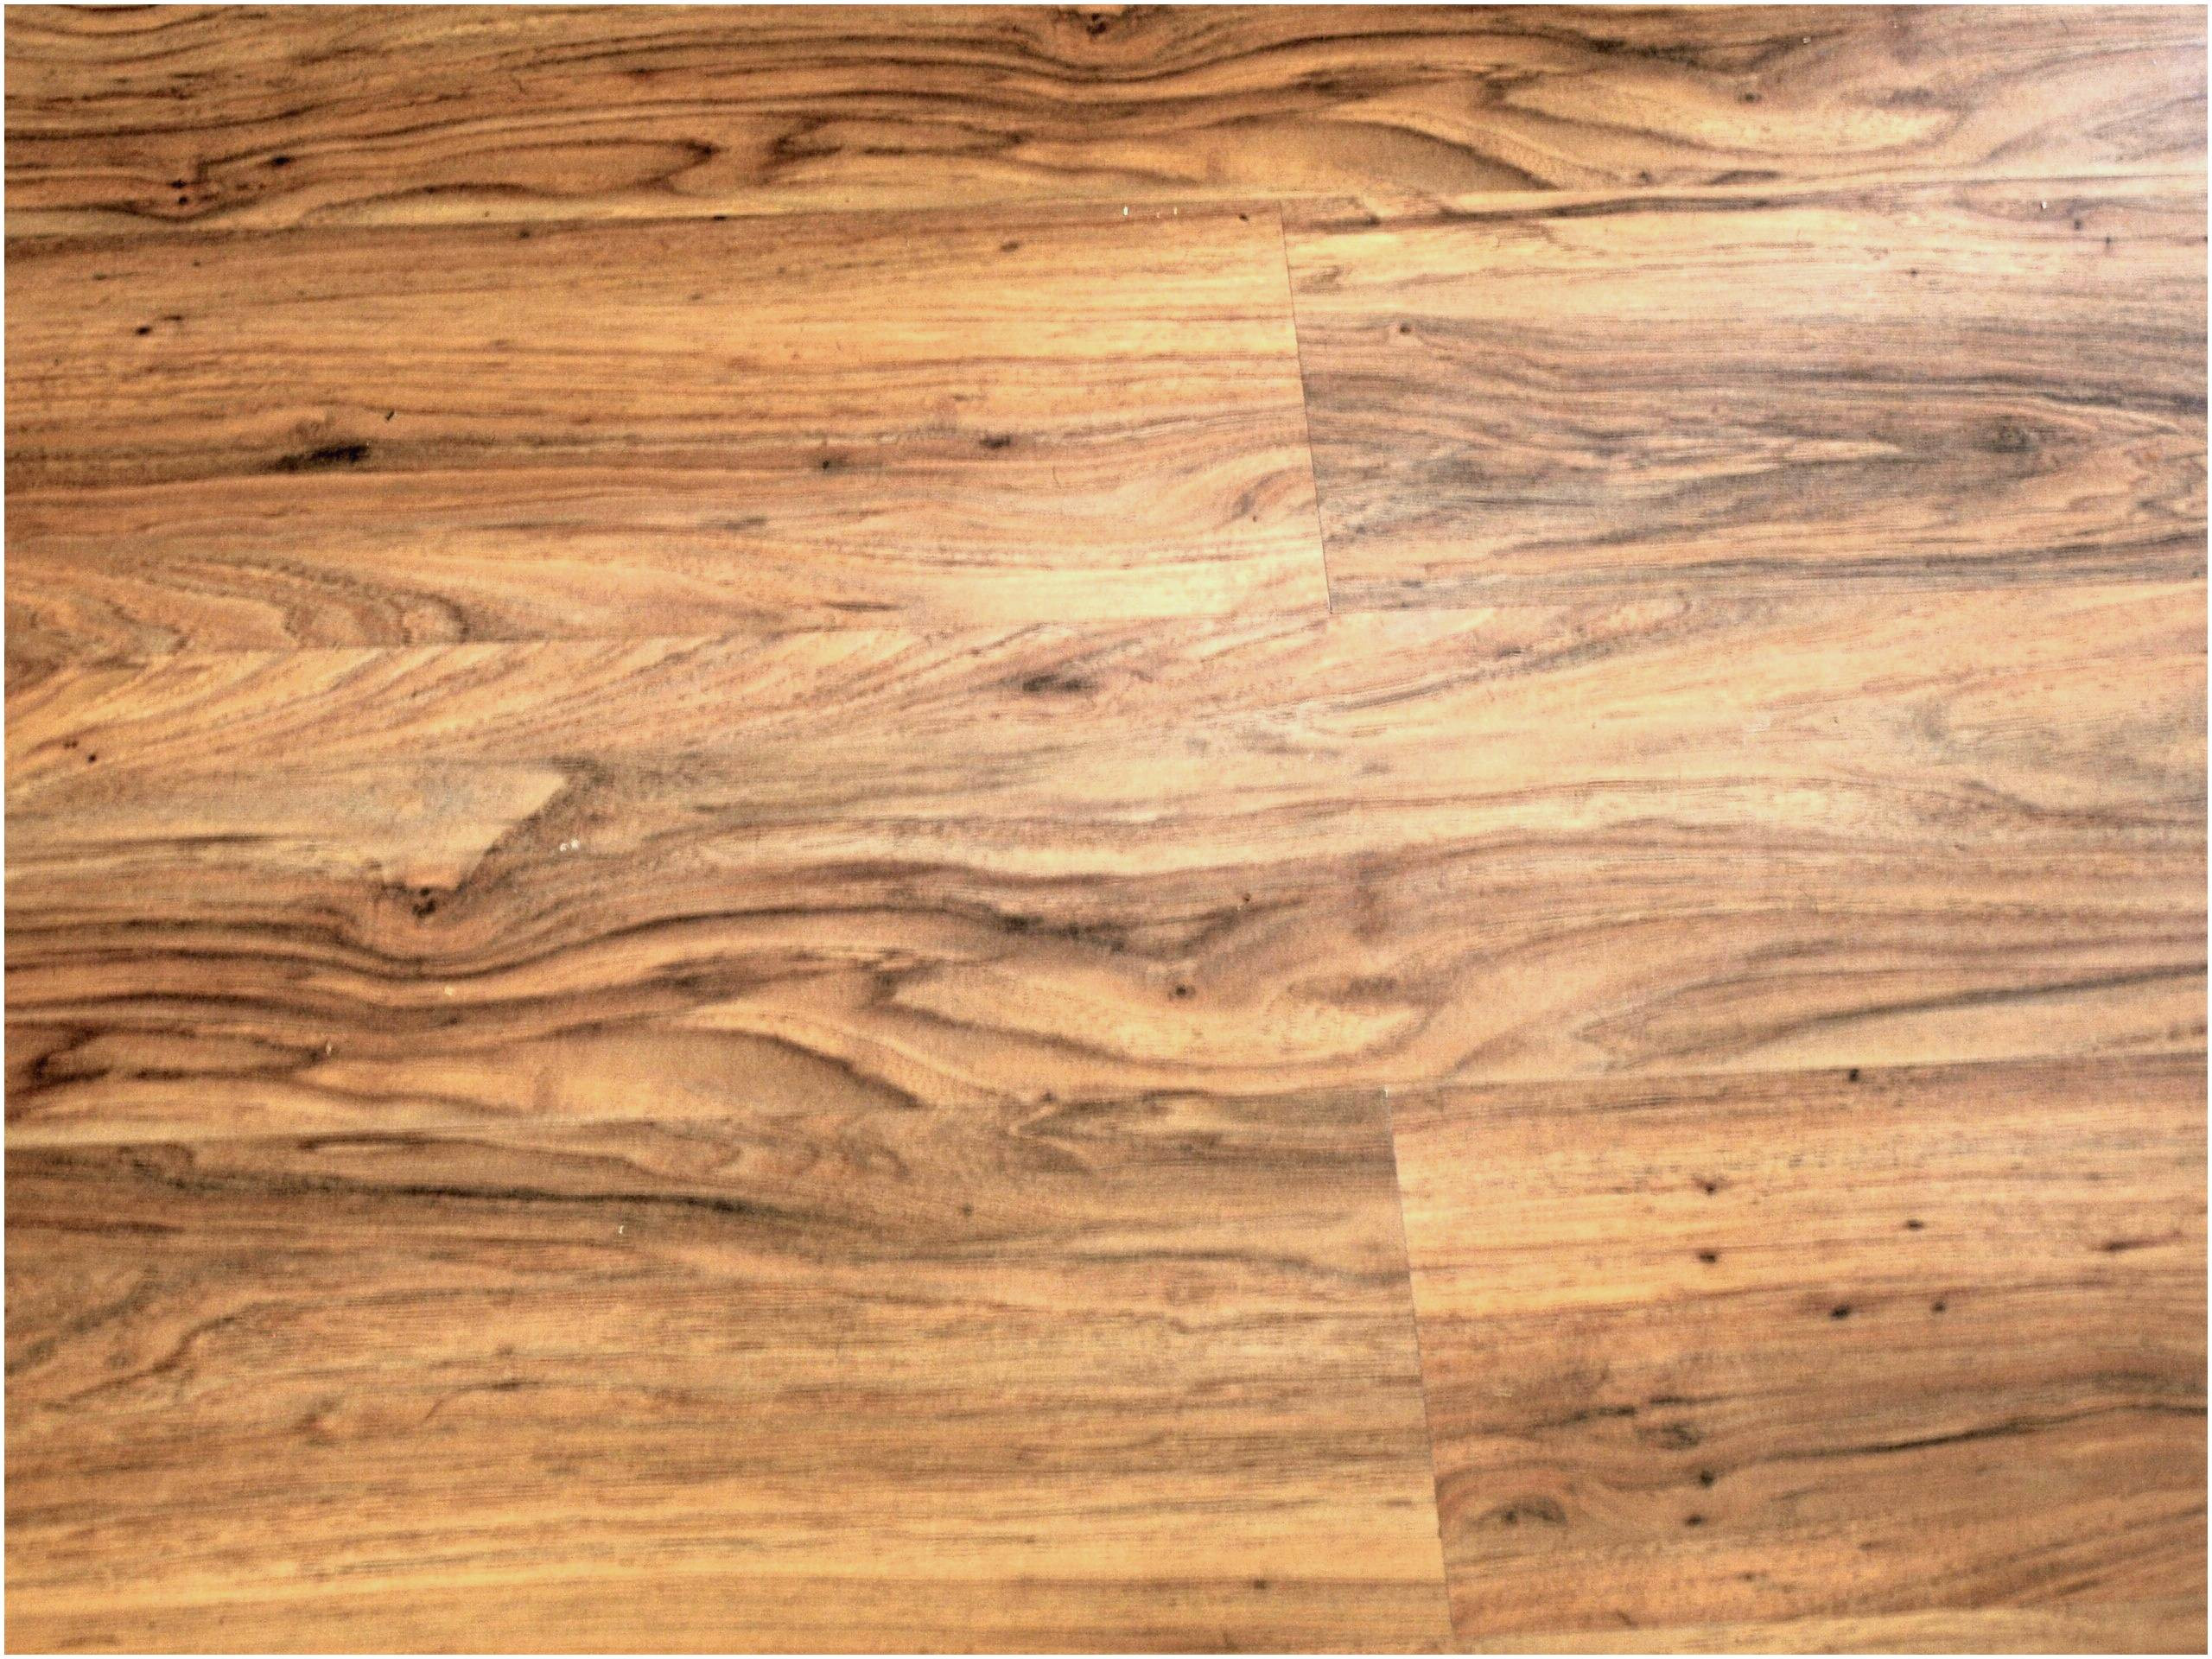 laminate flooring vs engineered hardwood of 39 excellent menards laminate flooring design tedxvermilionstreet org within menards laminate flooring ideas